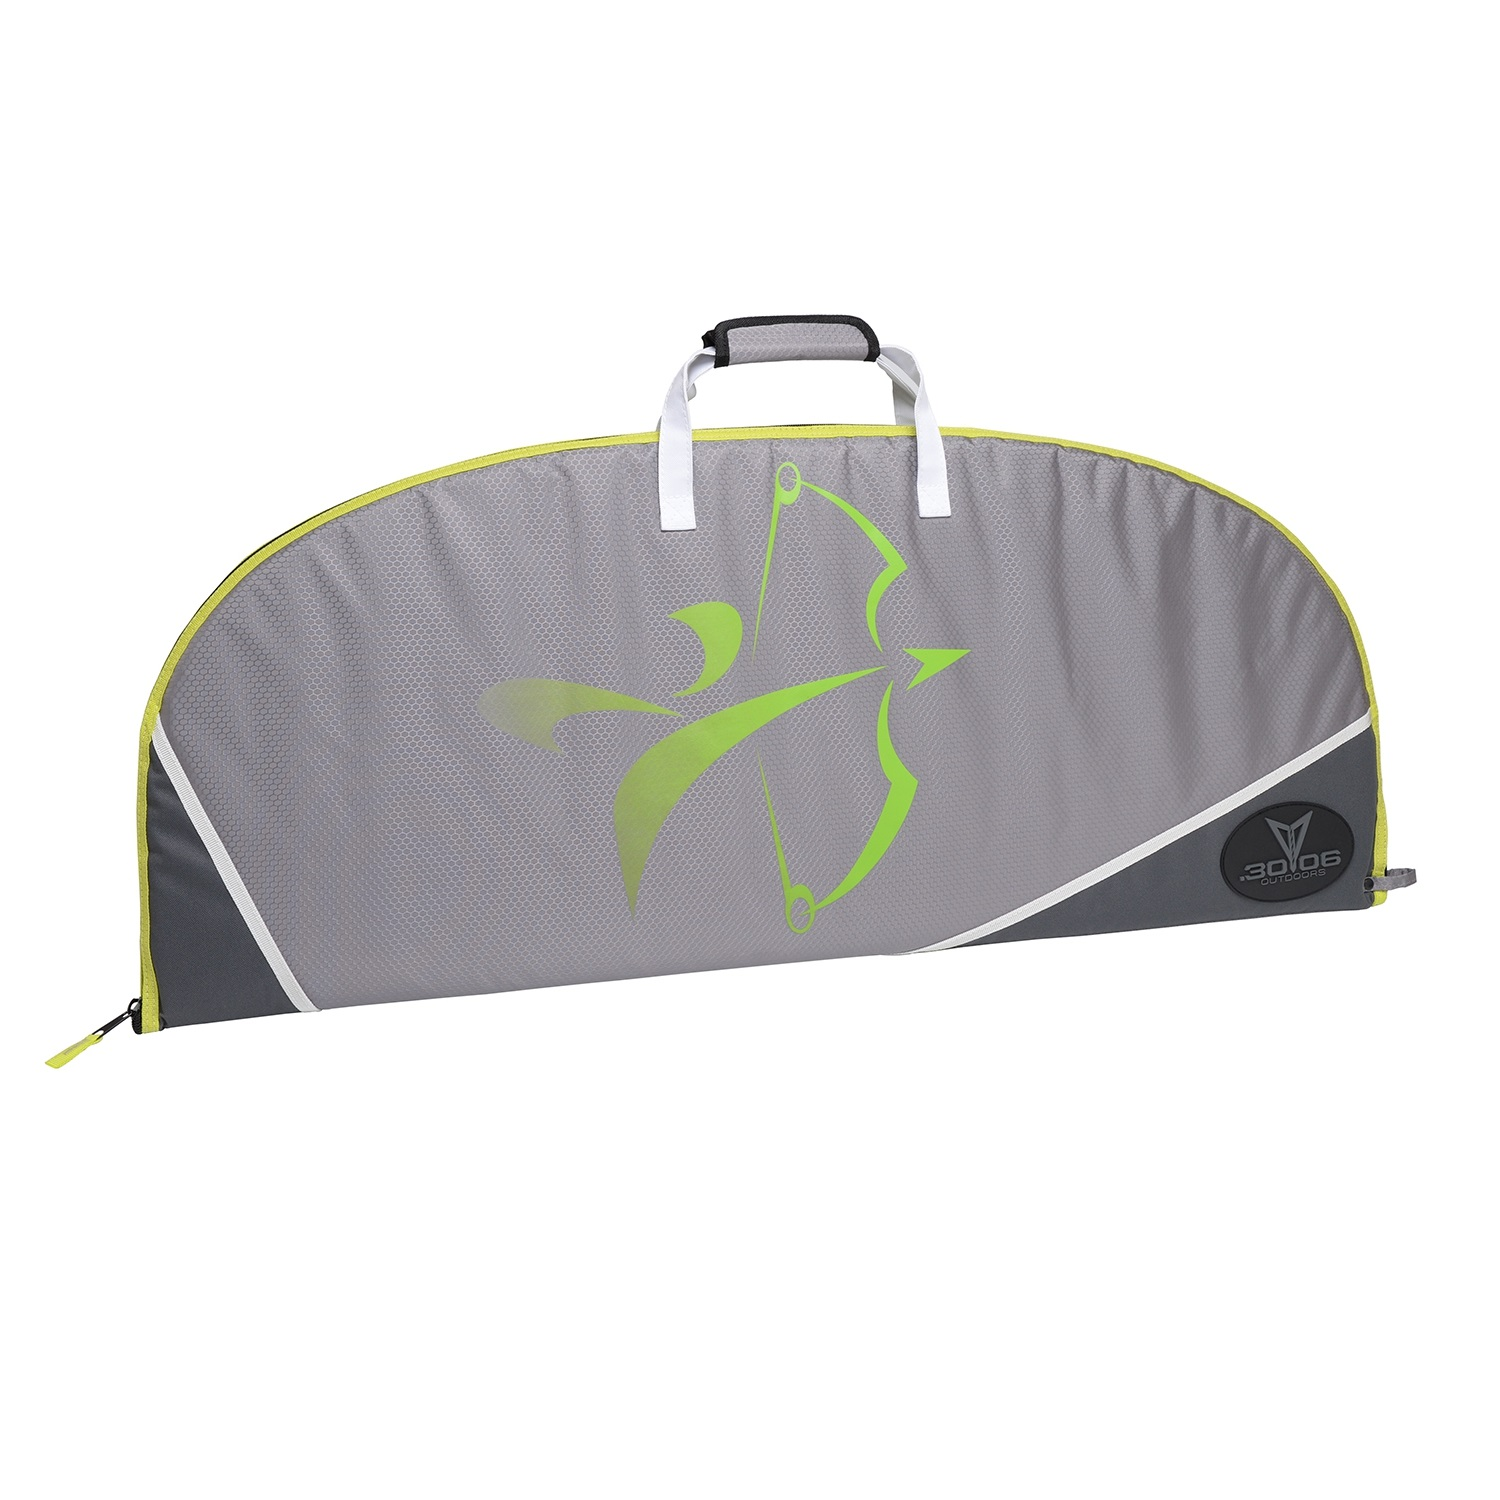 .30-06 Outdoors Freestyle Youth Compound Bow Case with Arrow